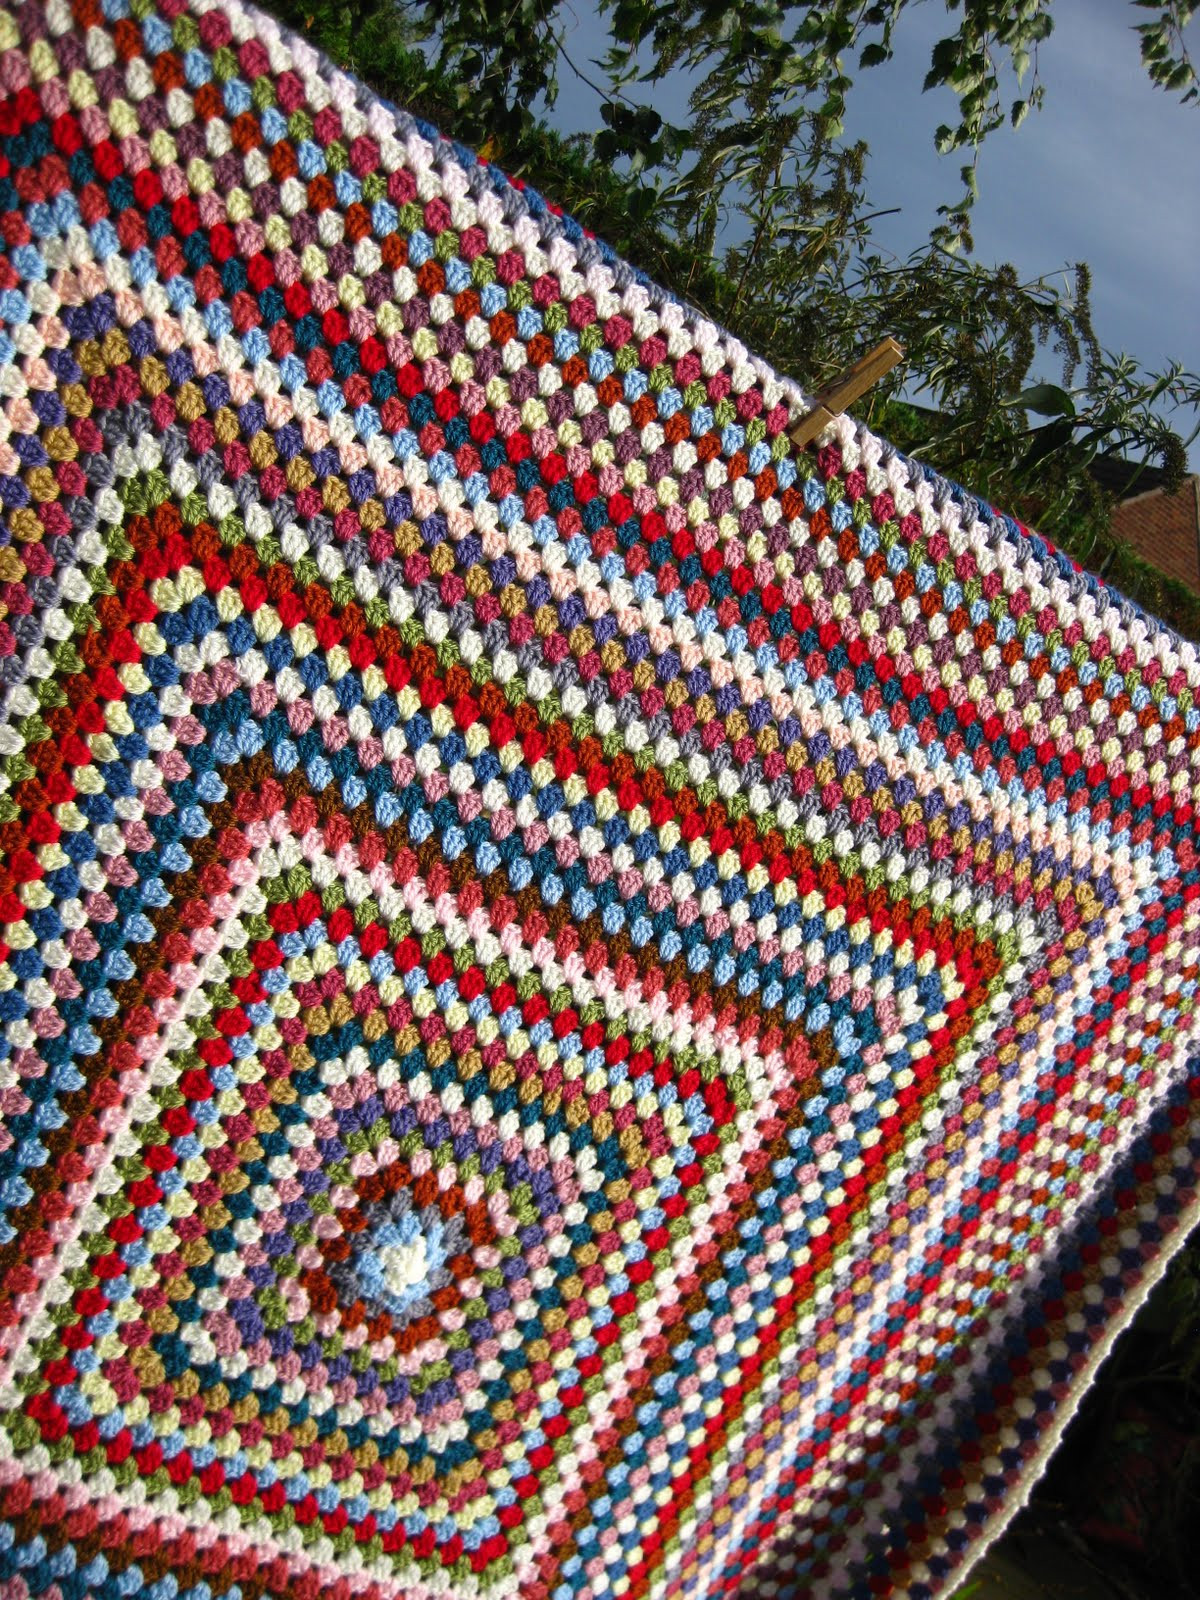 Crochet Granny Square Blanket Pattern Lovely Bunny Mummy How to Crochet A Granny Square Of Brilliant 48 Ideas Crochet Granny Square Blanket Pattern